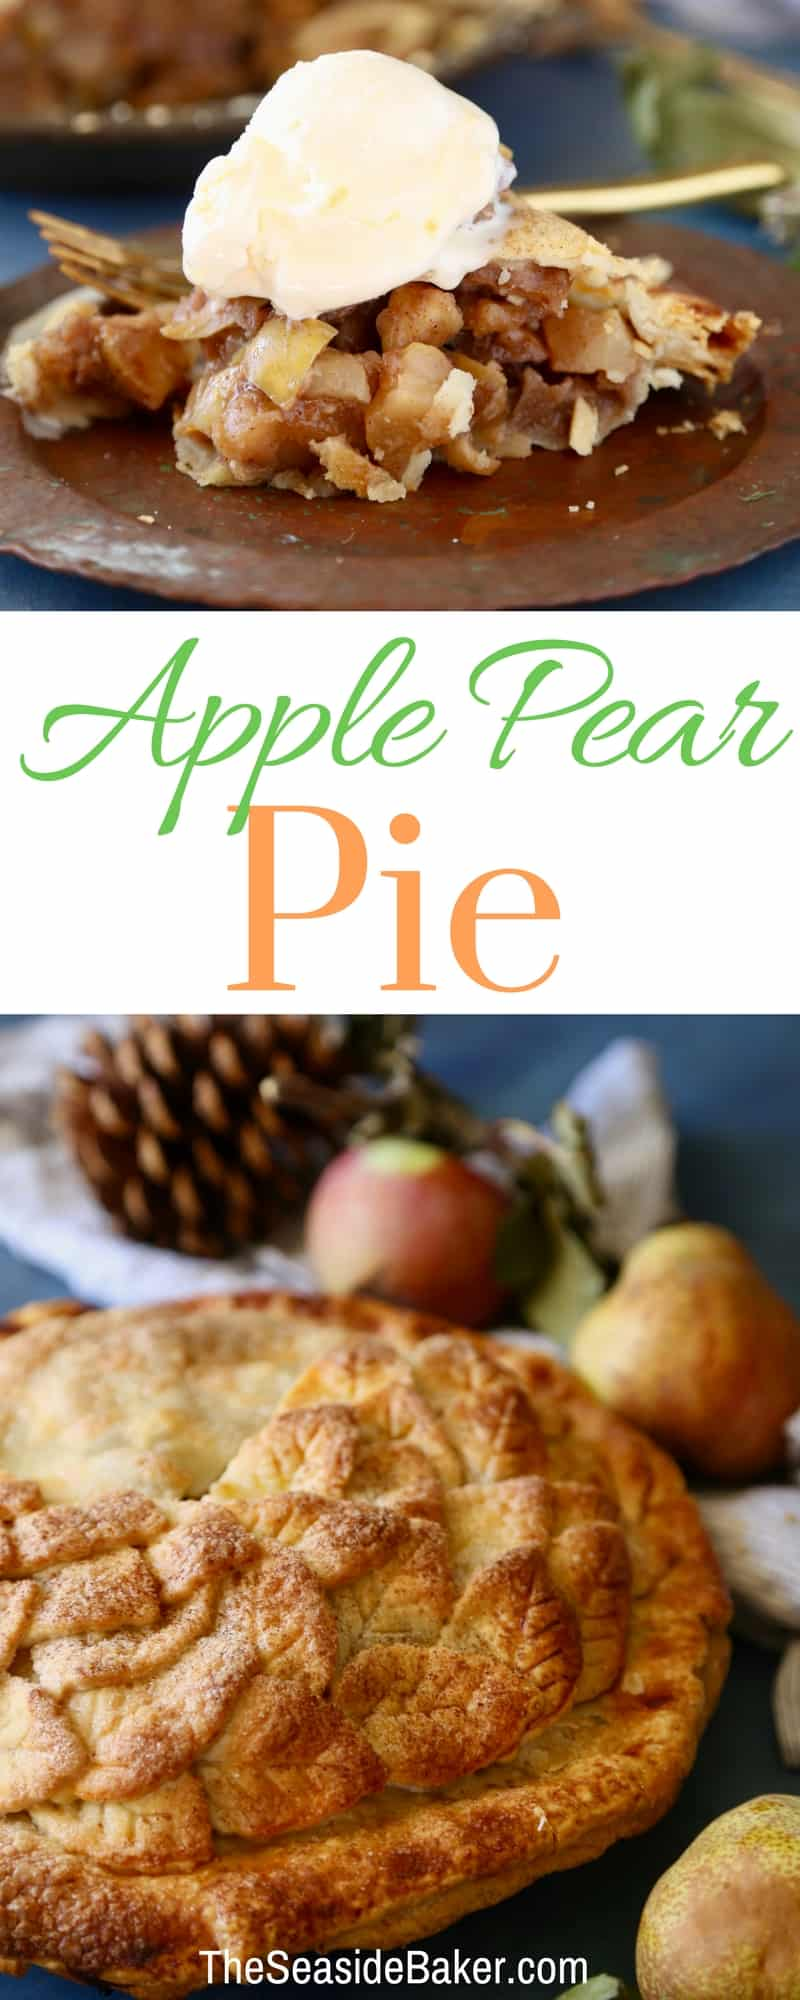 This Apple Pear Pie is everything you want in a Fall Dessert. It has a delicious buttery crust, sweet cinnamon apple pear filling, and beautiful leaf crust cutouts. Perfect for Thanksgiving too!